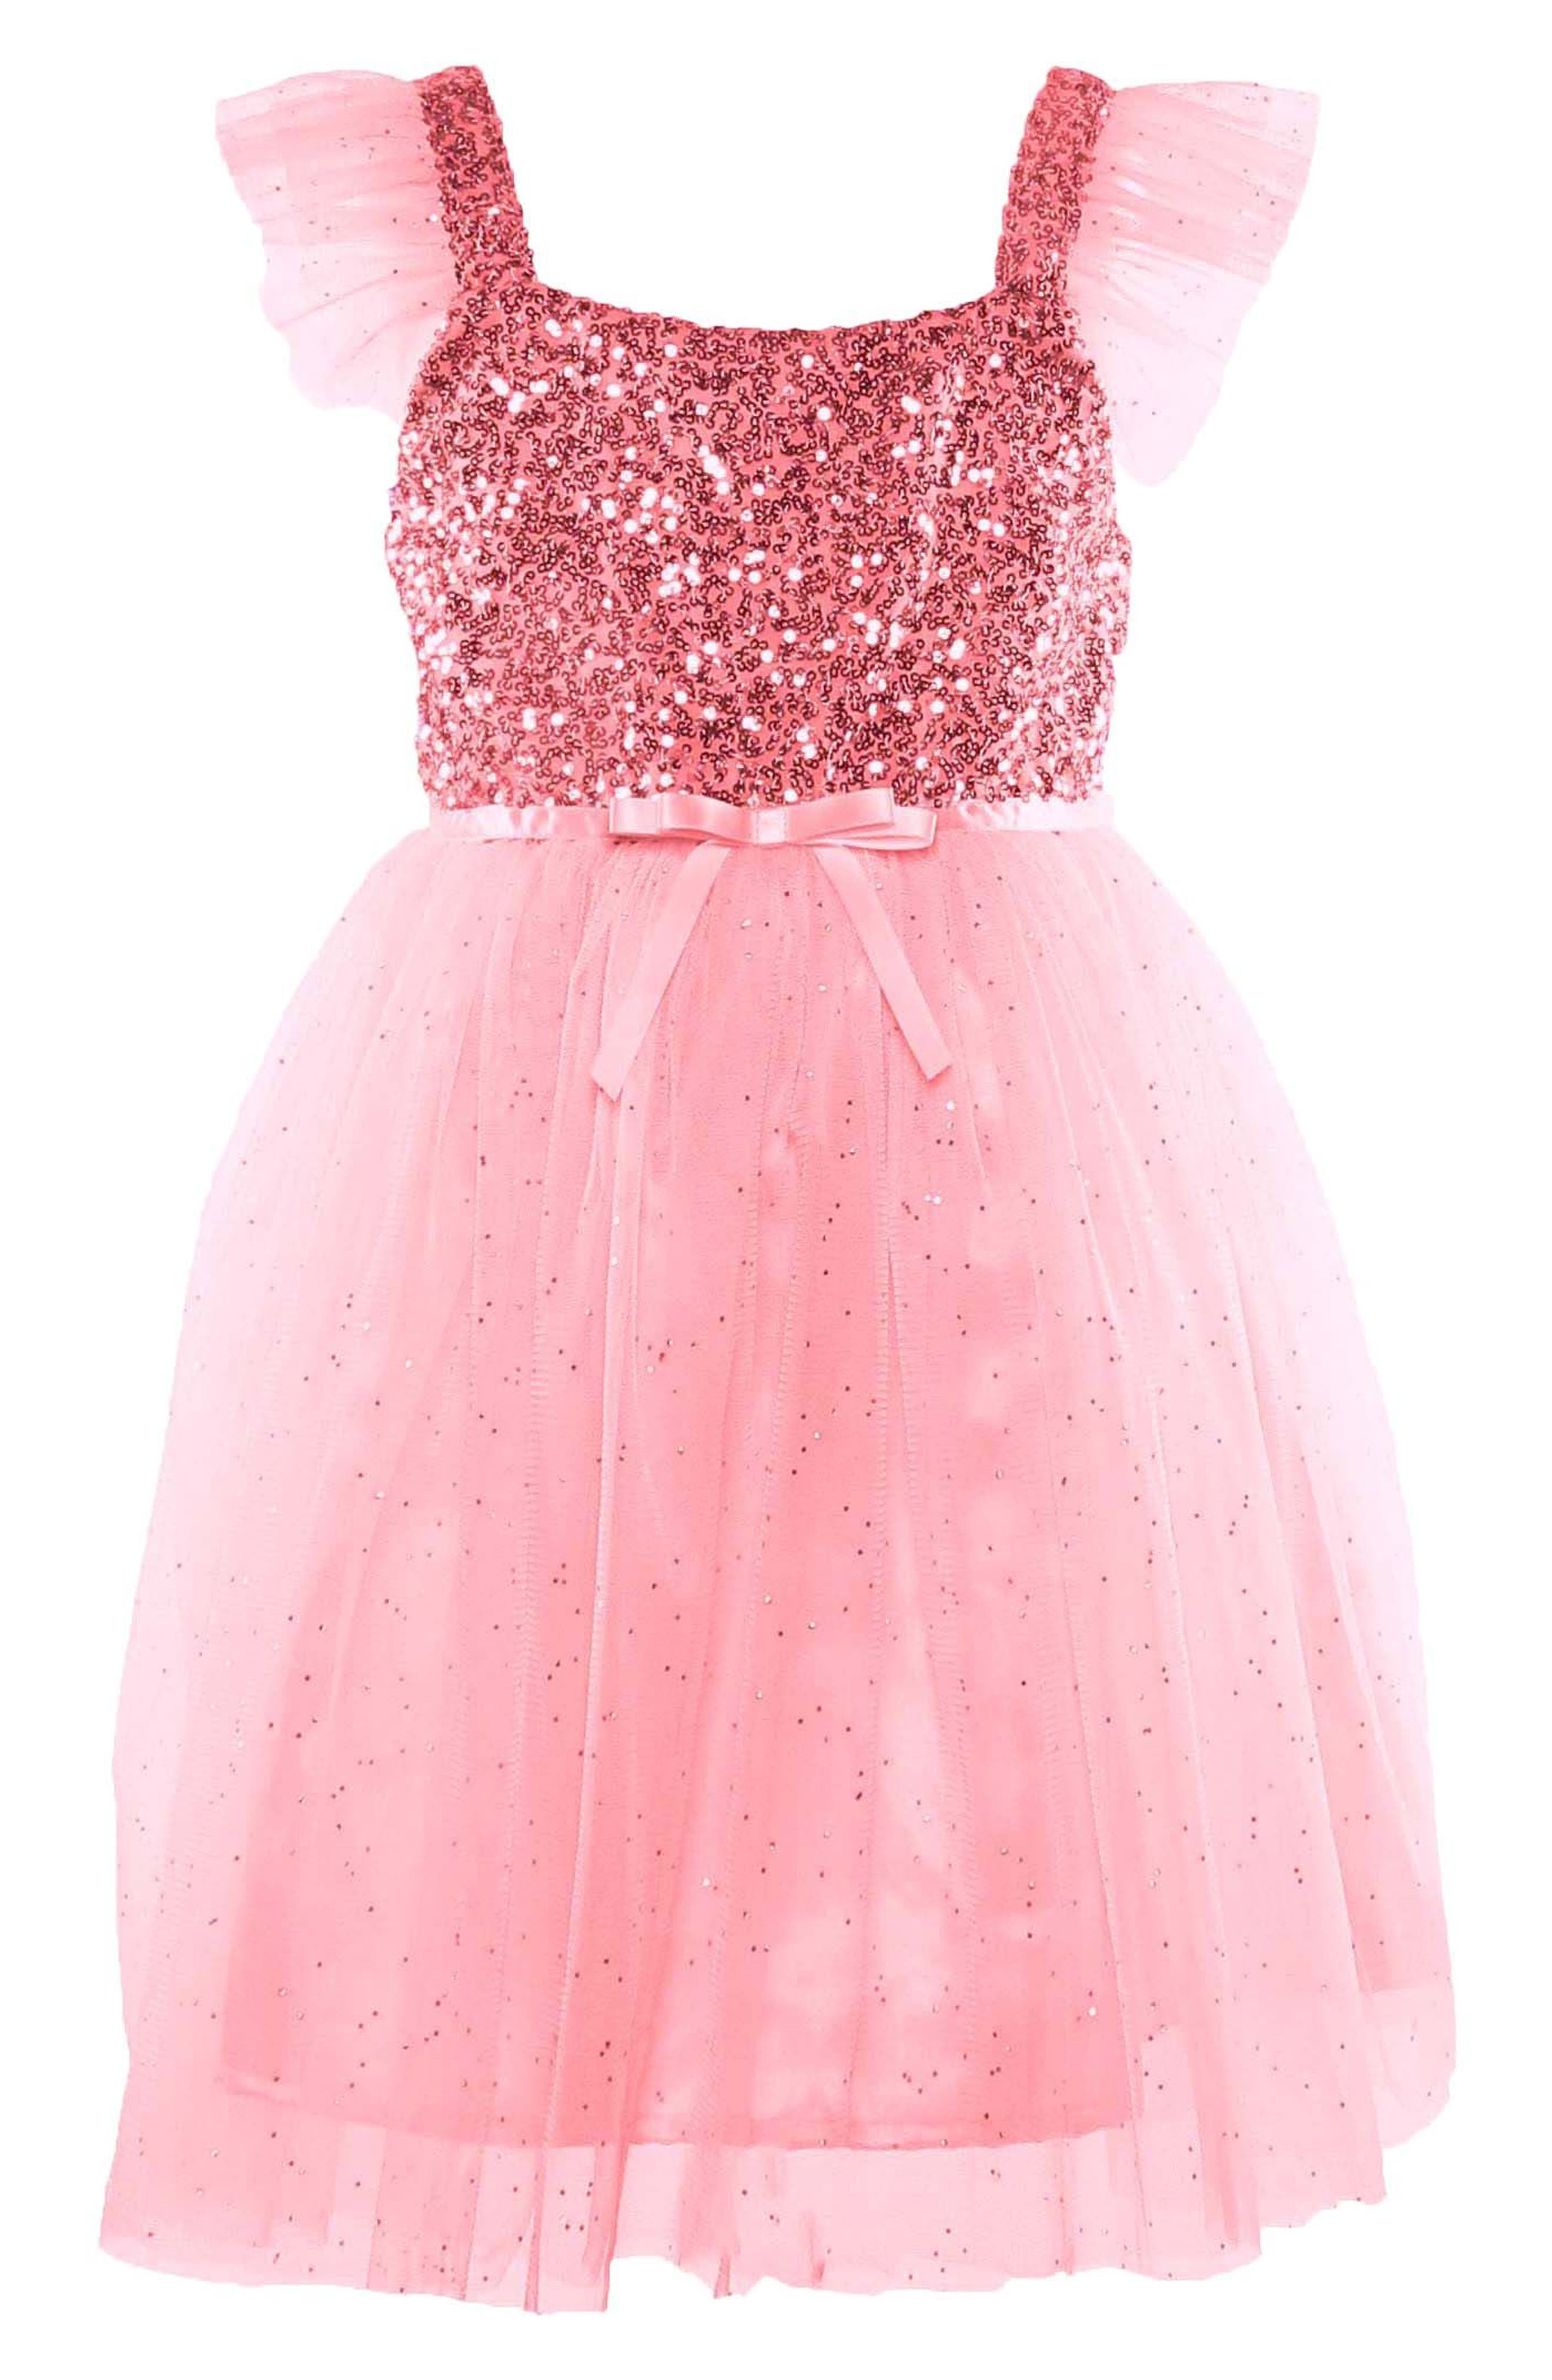 Toddler Girls Popatu Sequin Bodice Tulle Dress Size 3T  Pink